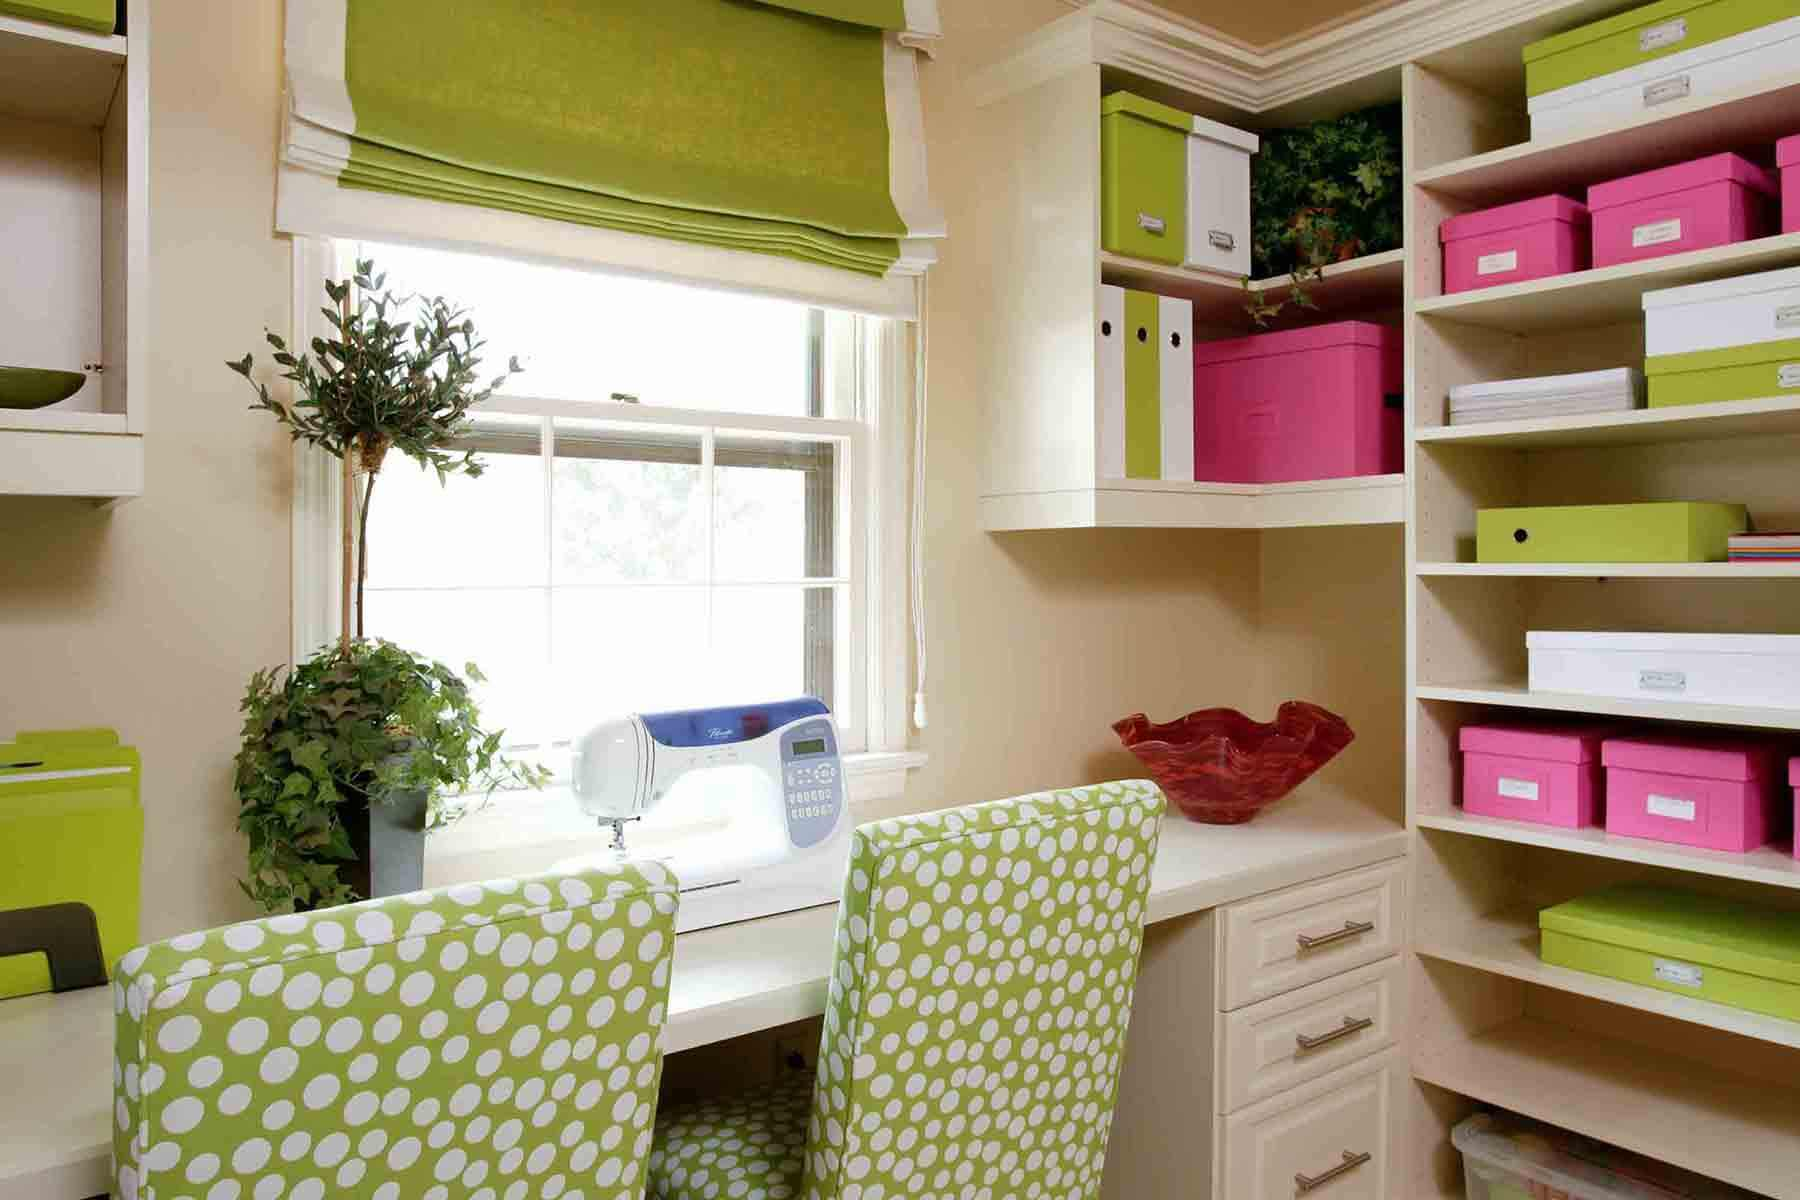 Ideas For Sewing Room Design Part - 15: Green, Pink And White Craft And Sewing Room With Custom Built In Storage  From Floor